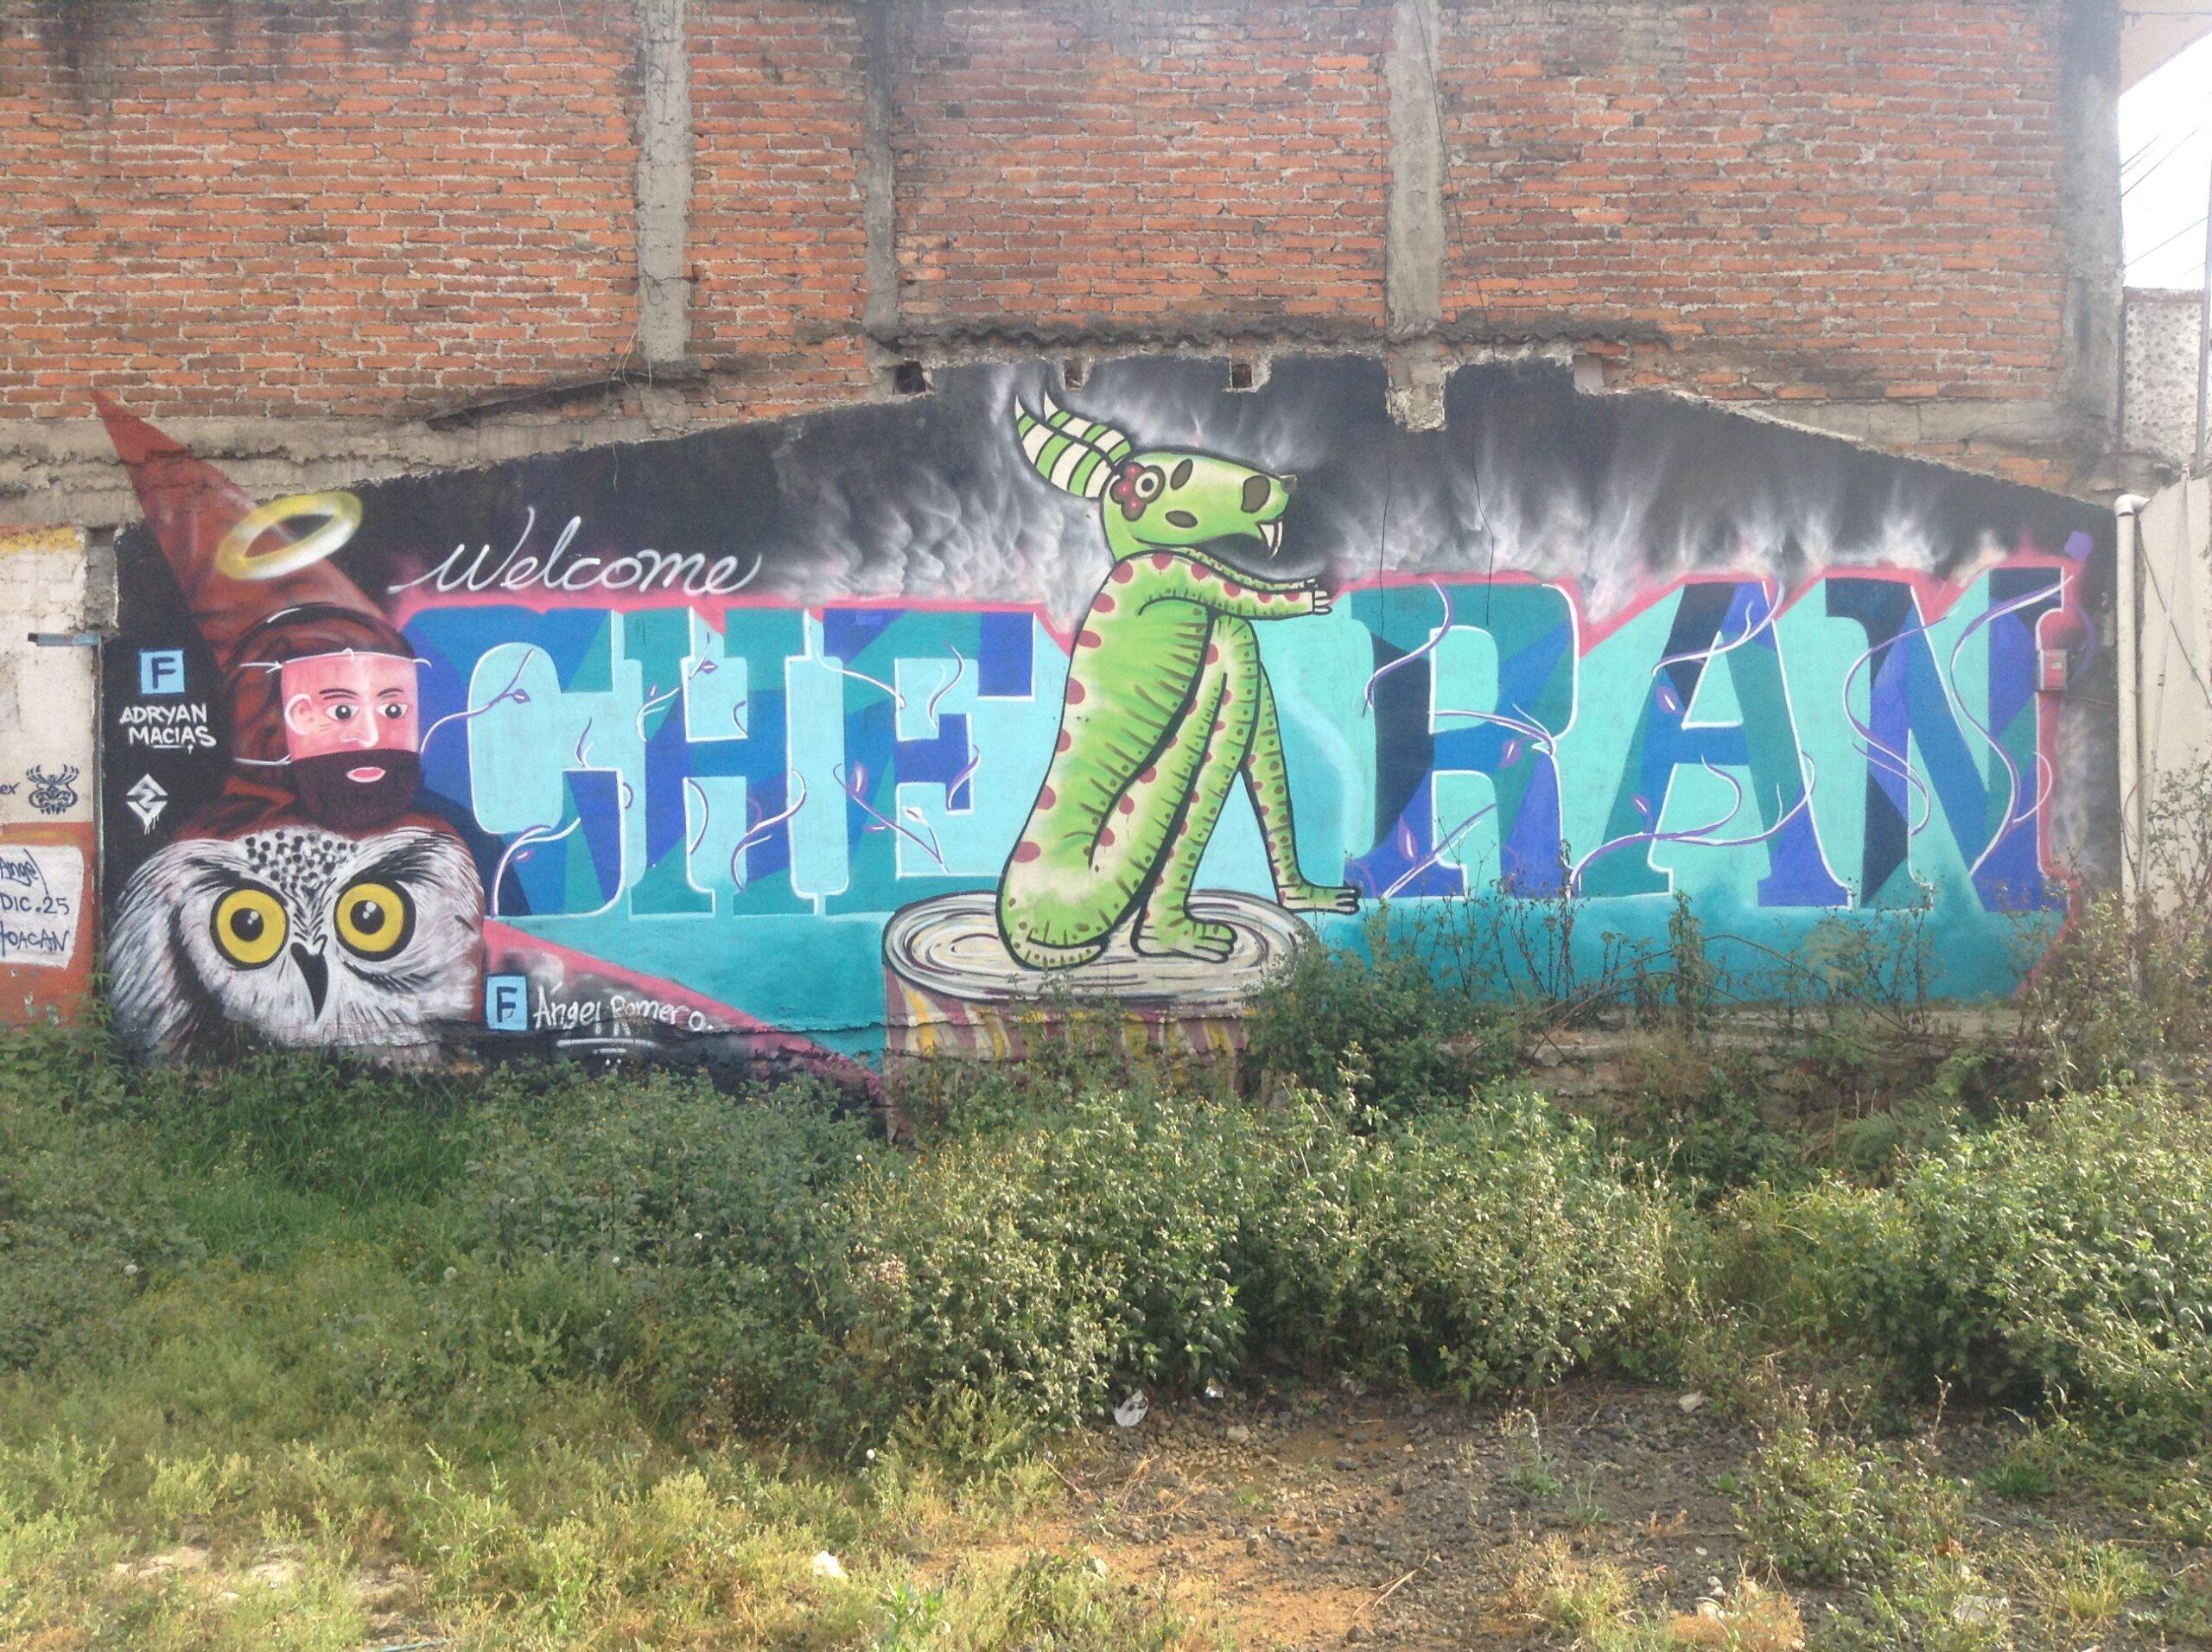 Welcome to Cheran